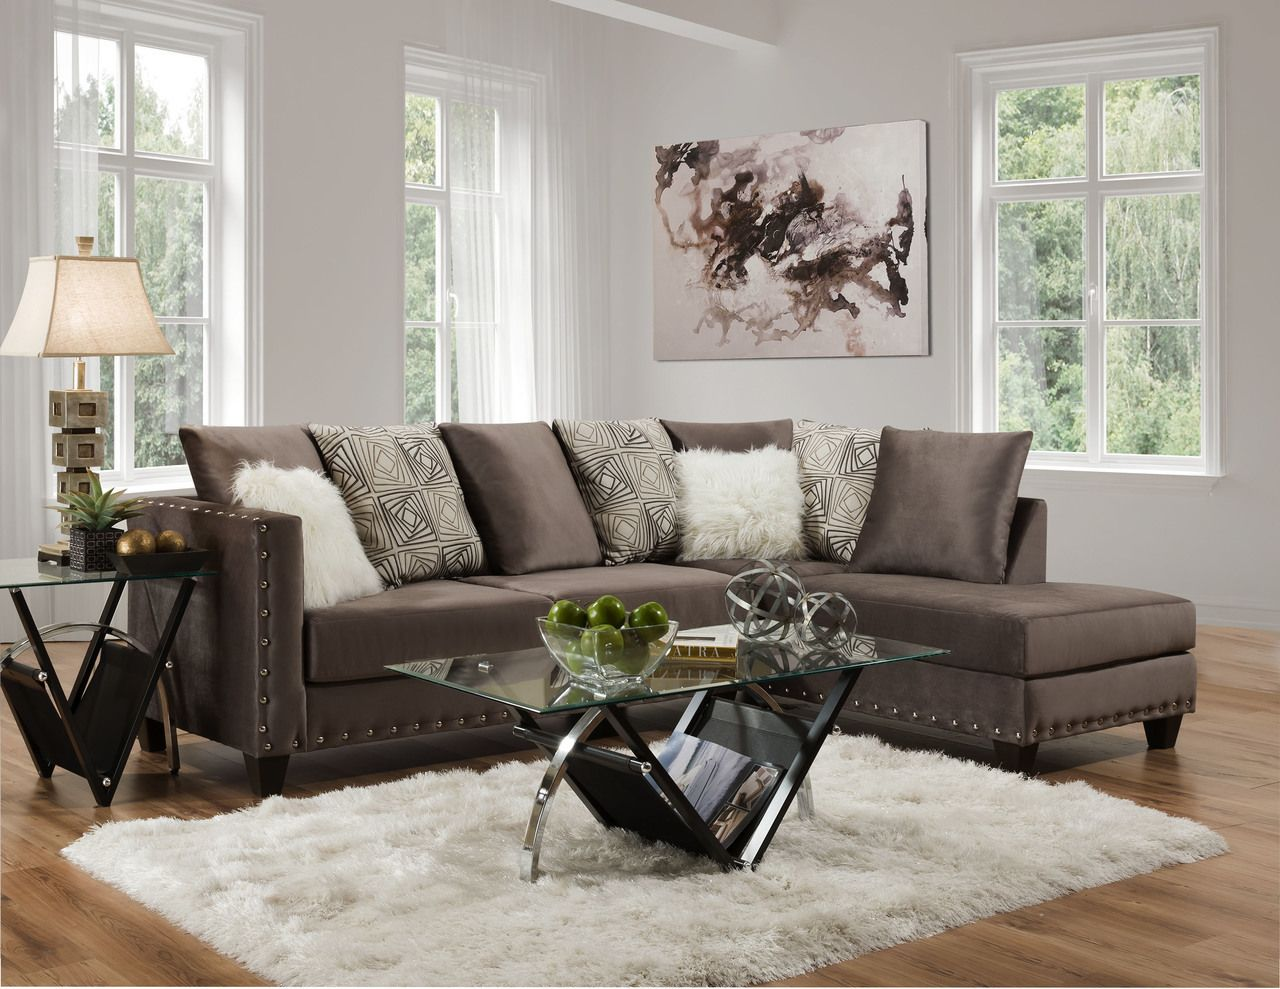 Delta Furniture Melon Cloud Sectional Sofa Upholstered Sectional